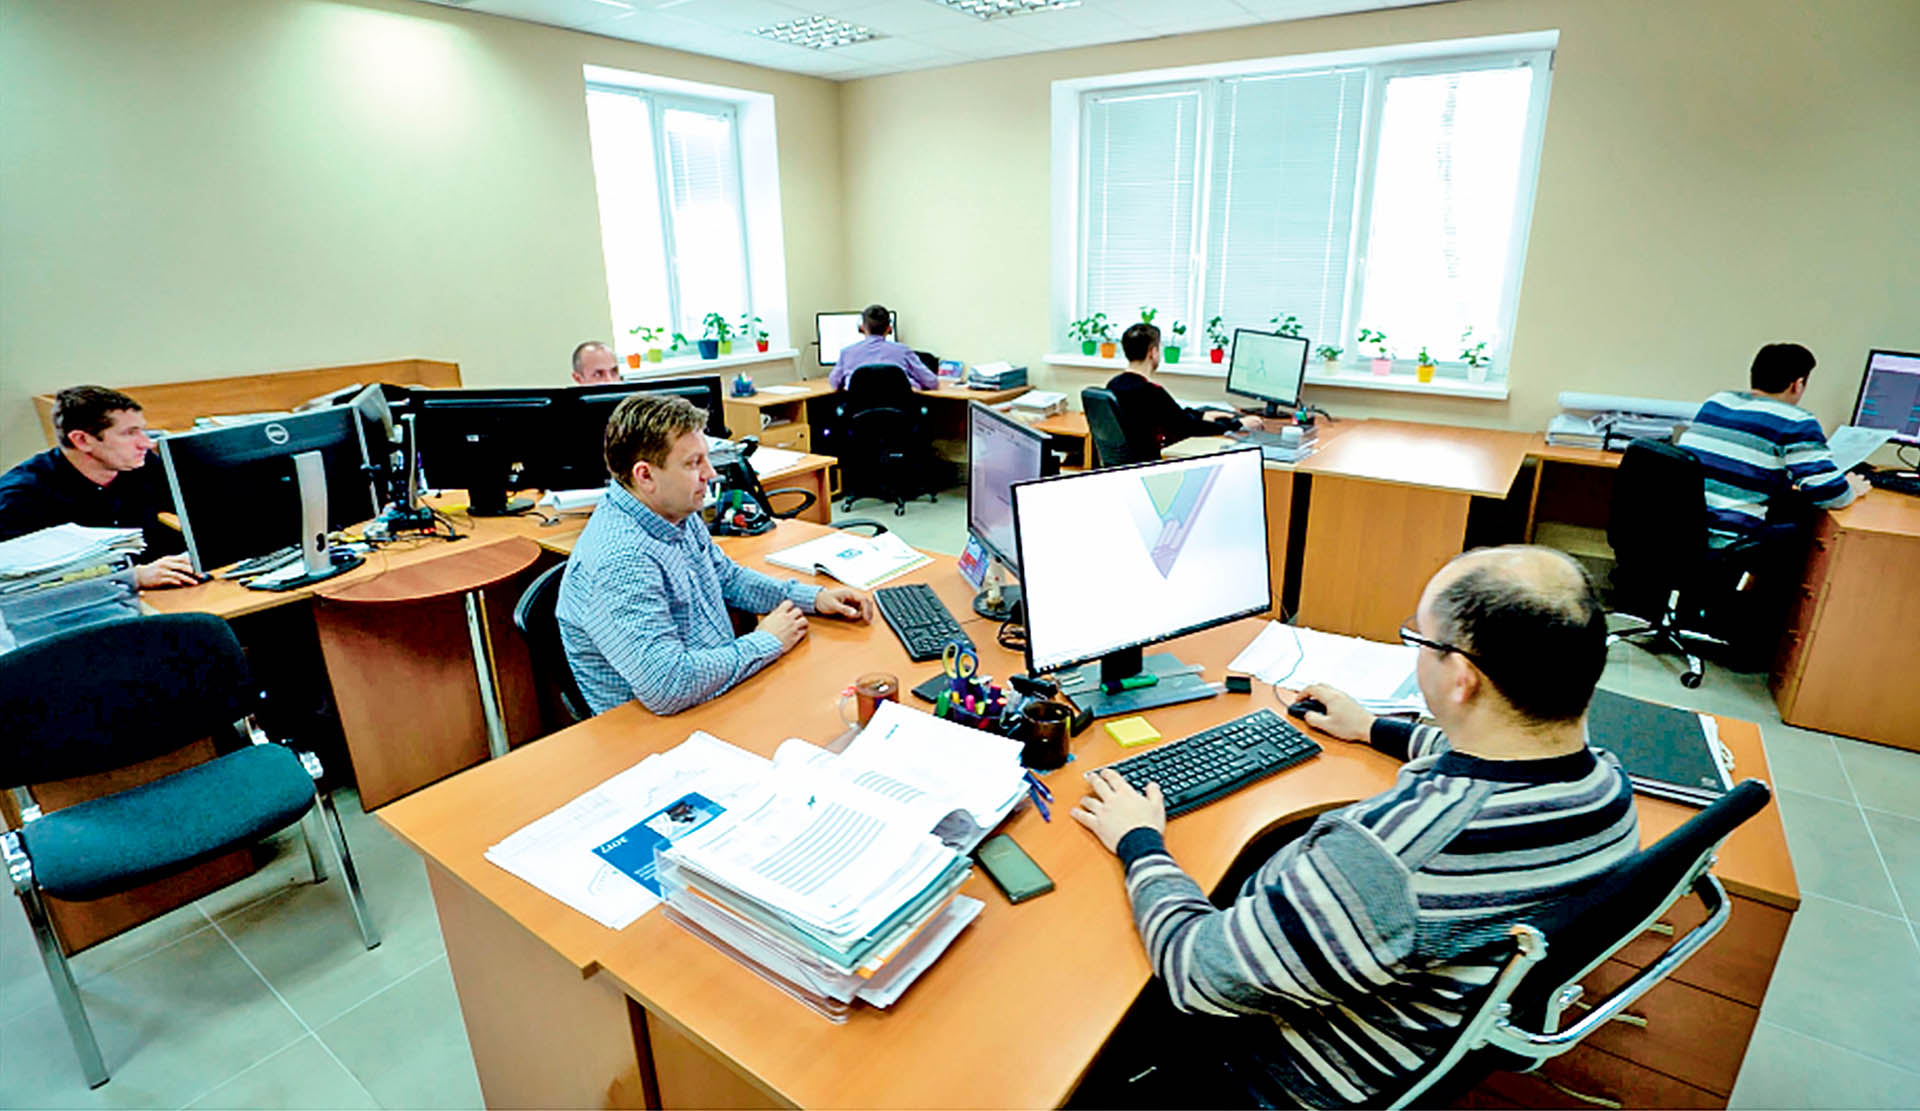 Myfin.by: SkyWay are professionals with excellent skills